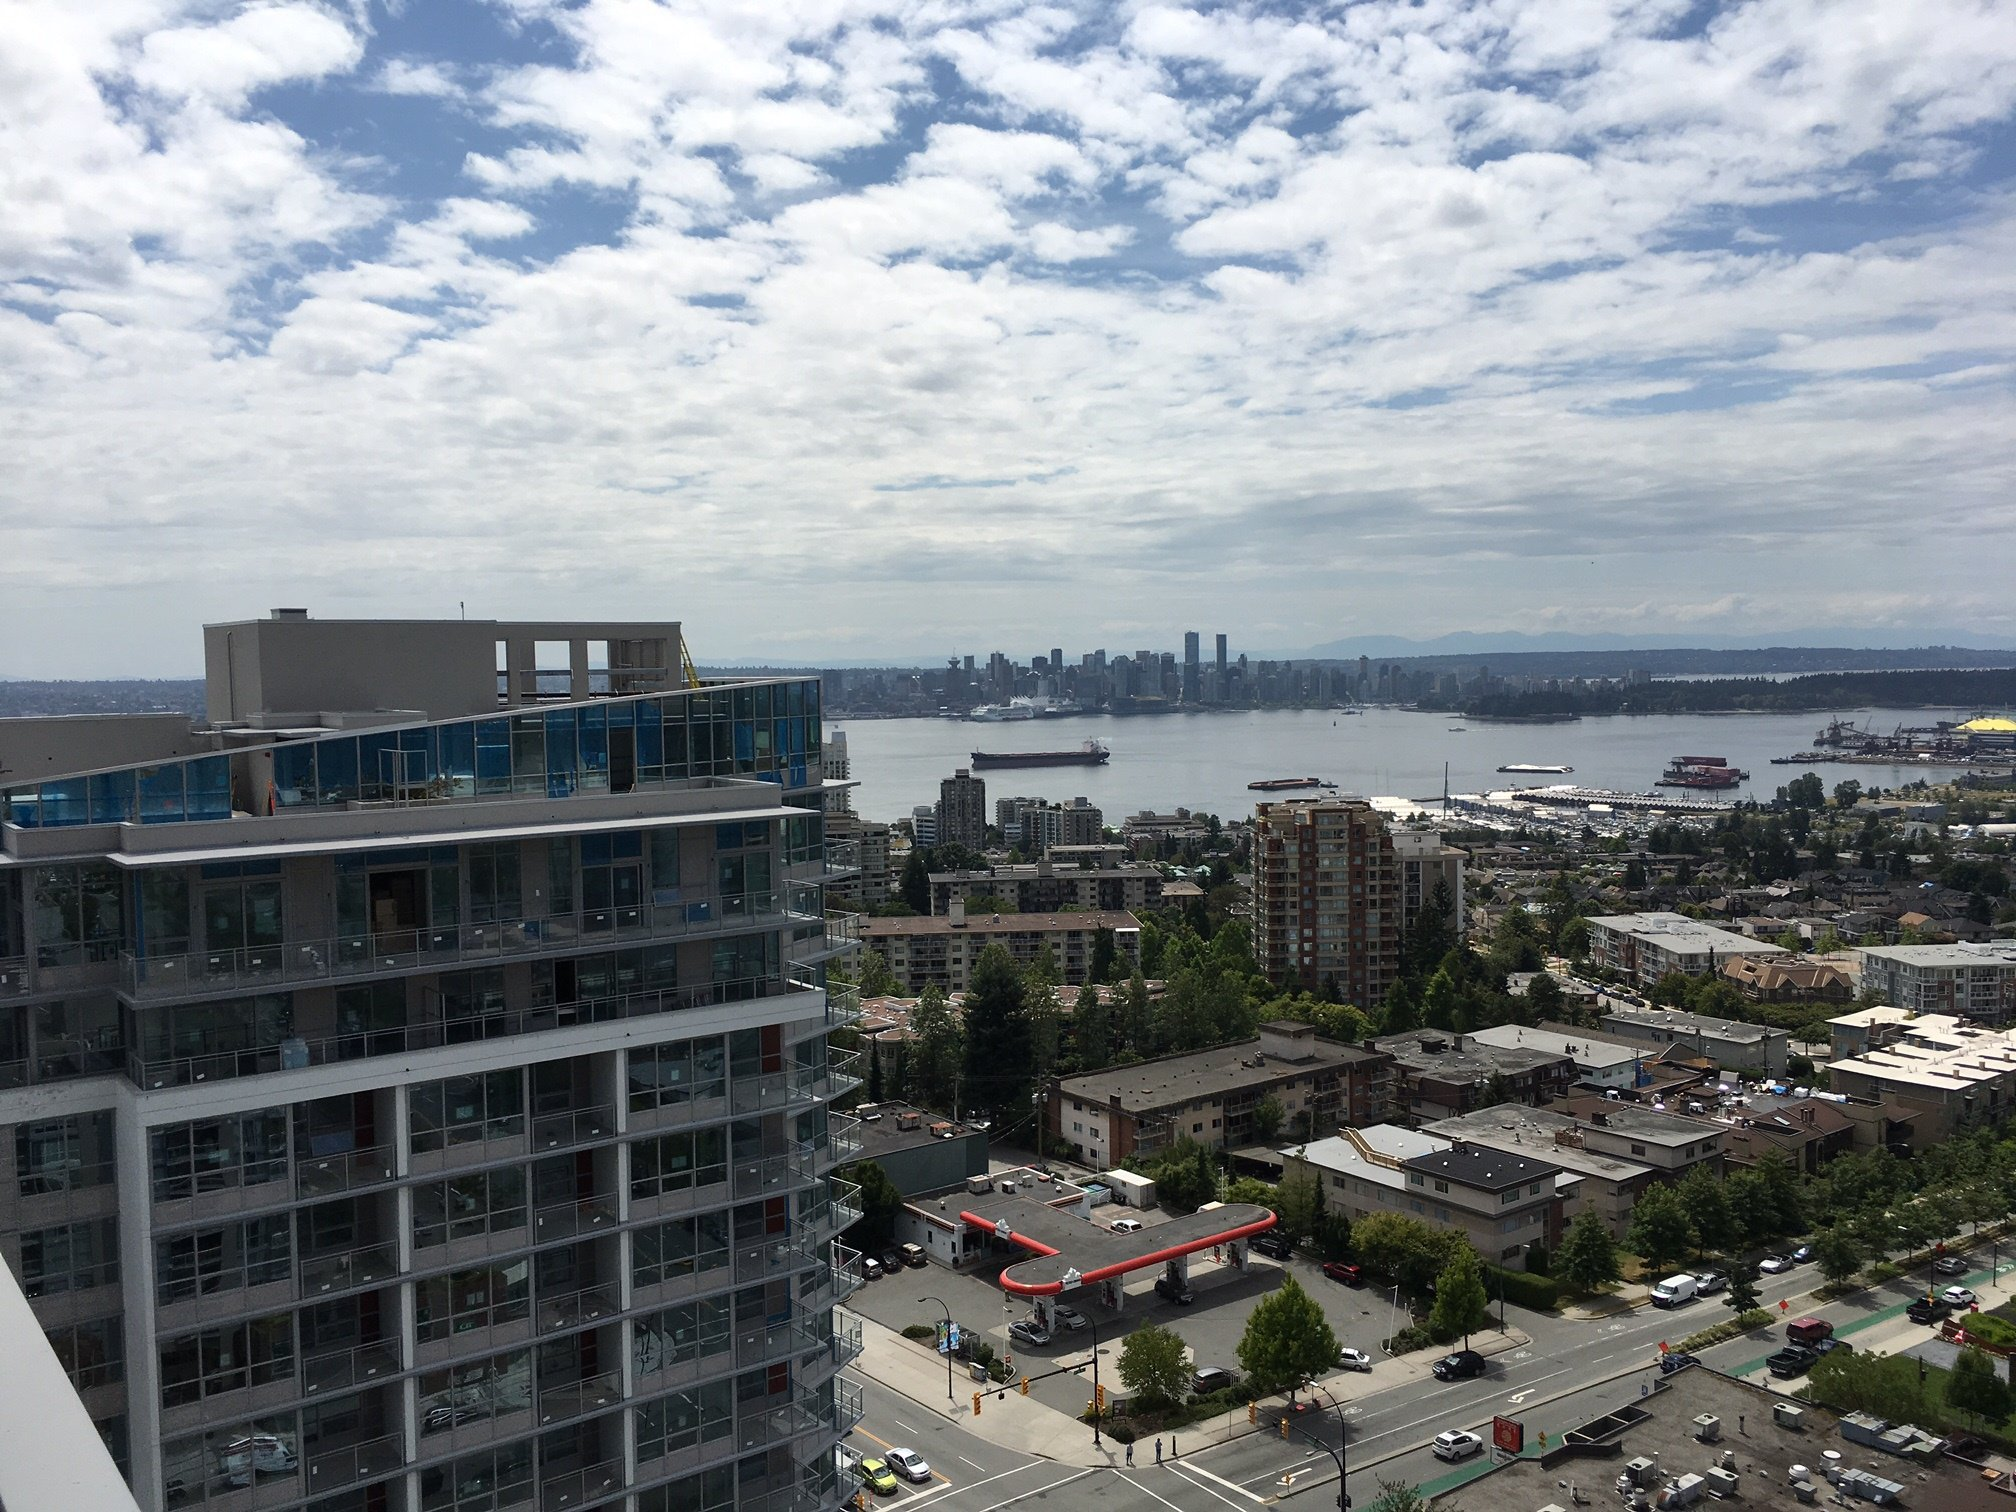 Photo 9: Photos: 112 E.13th Street in North Vancouver: Central Lonsdale Condo for rent